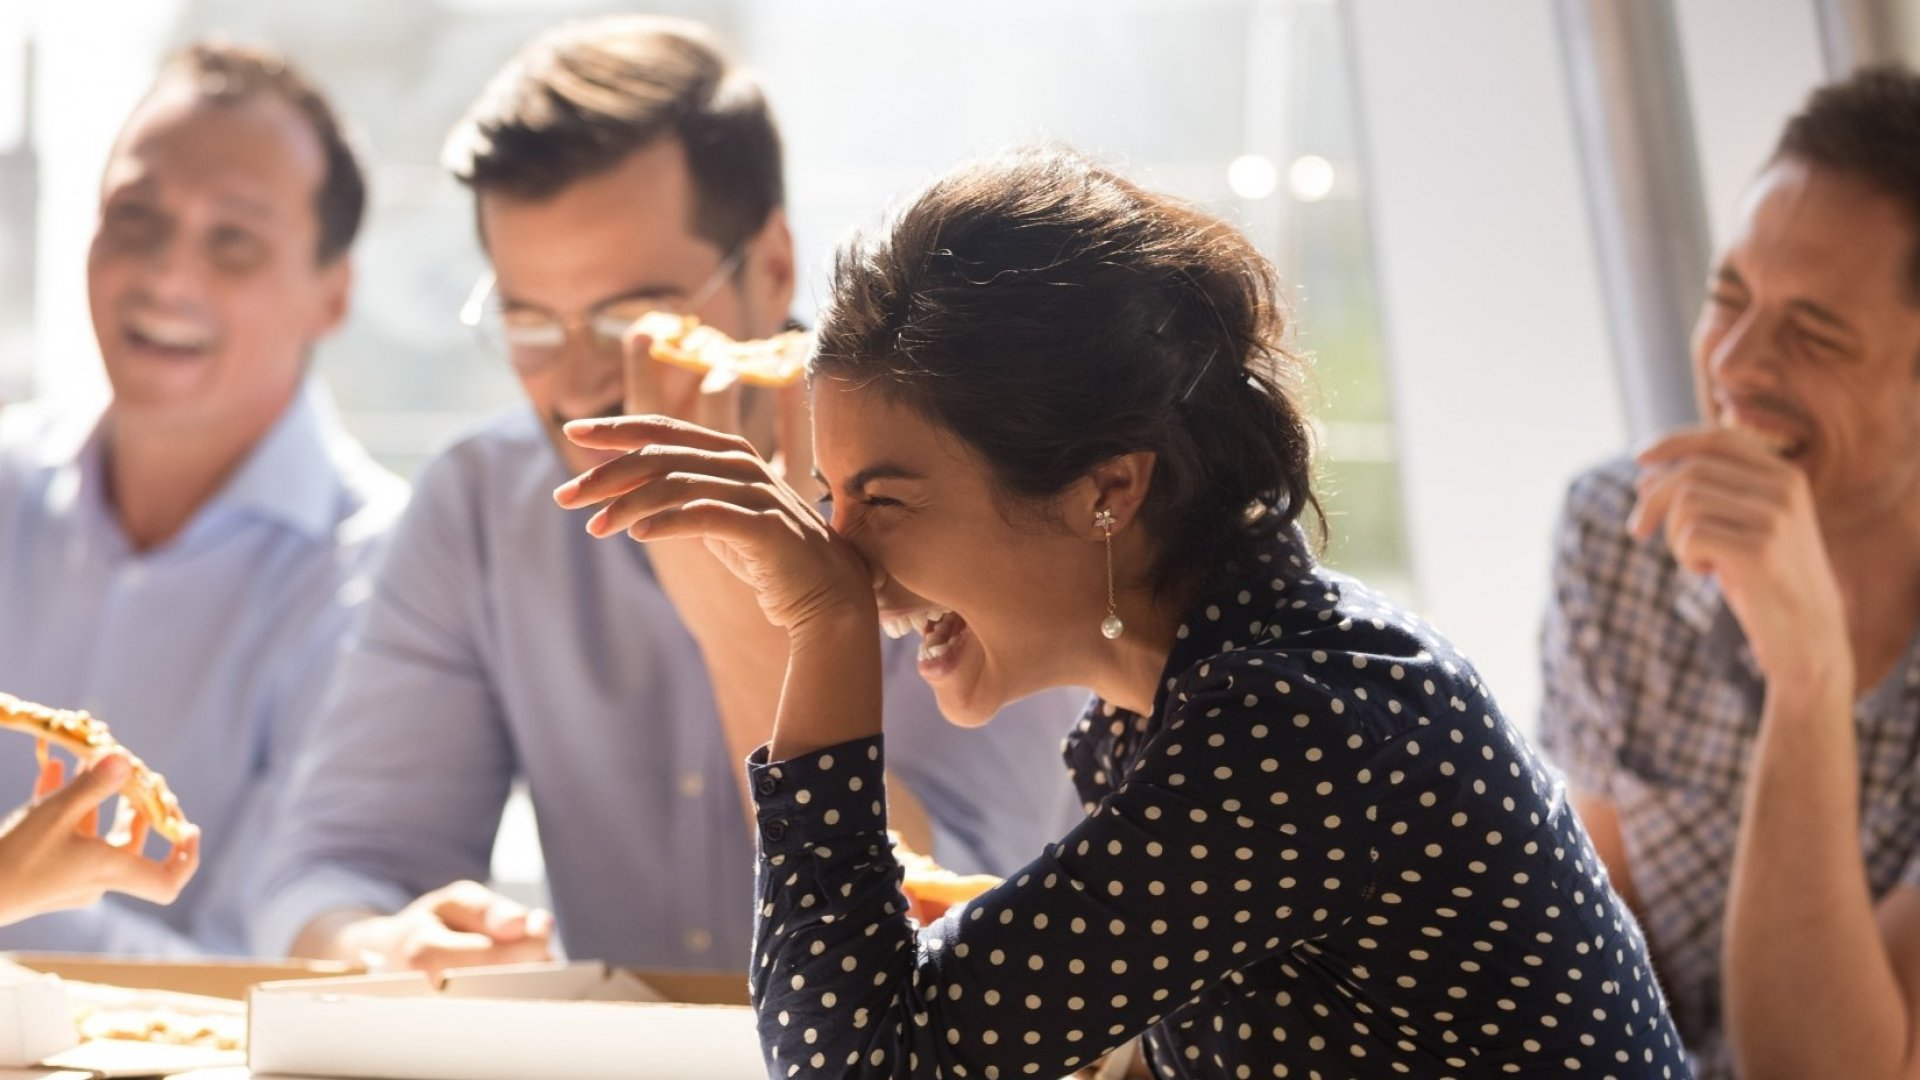 6 Simple Ways Positive People Bring More Meaning, Happiness, and Success to Work